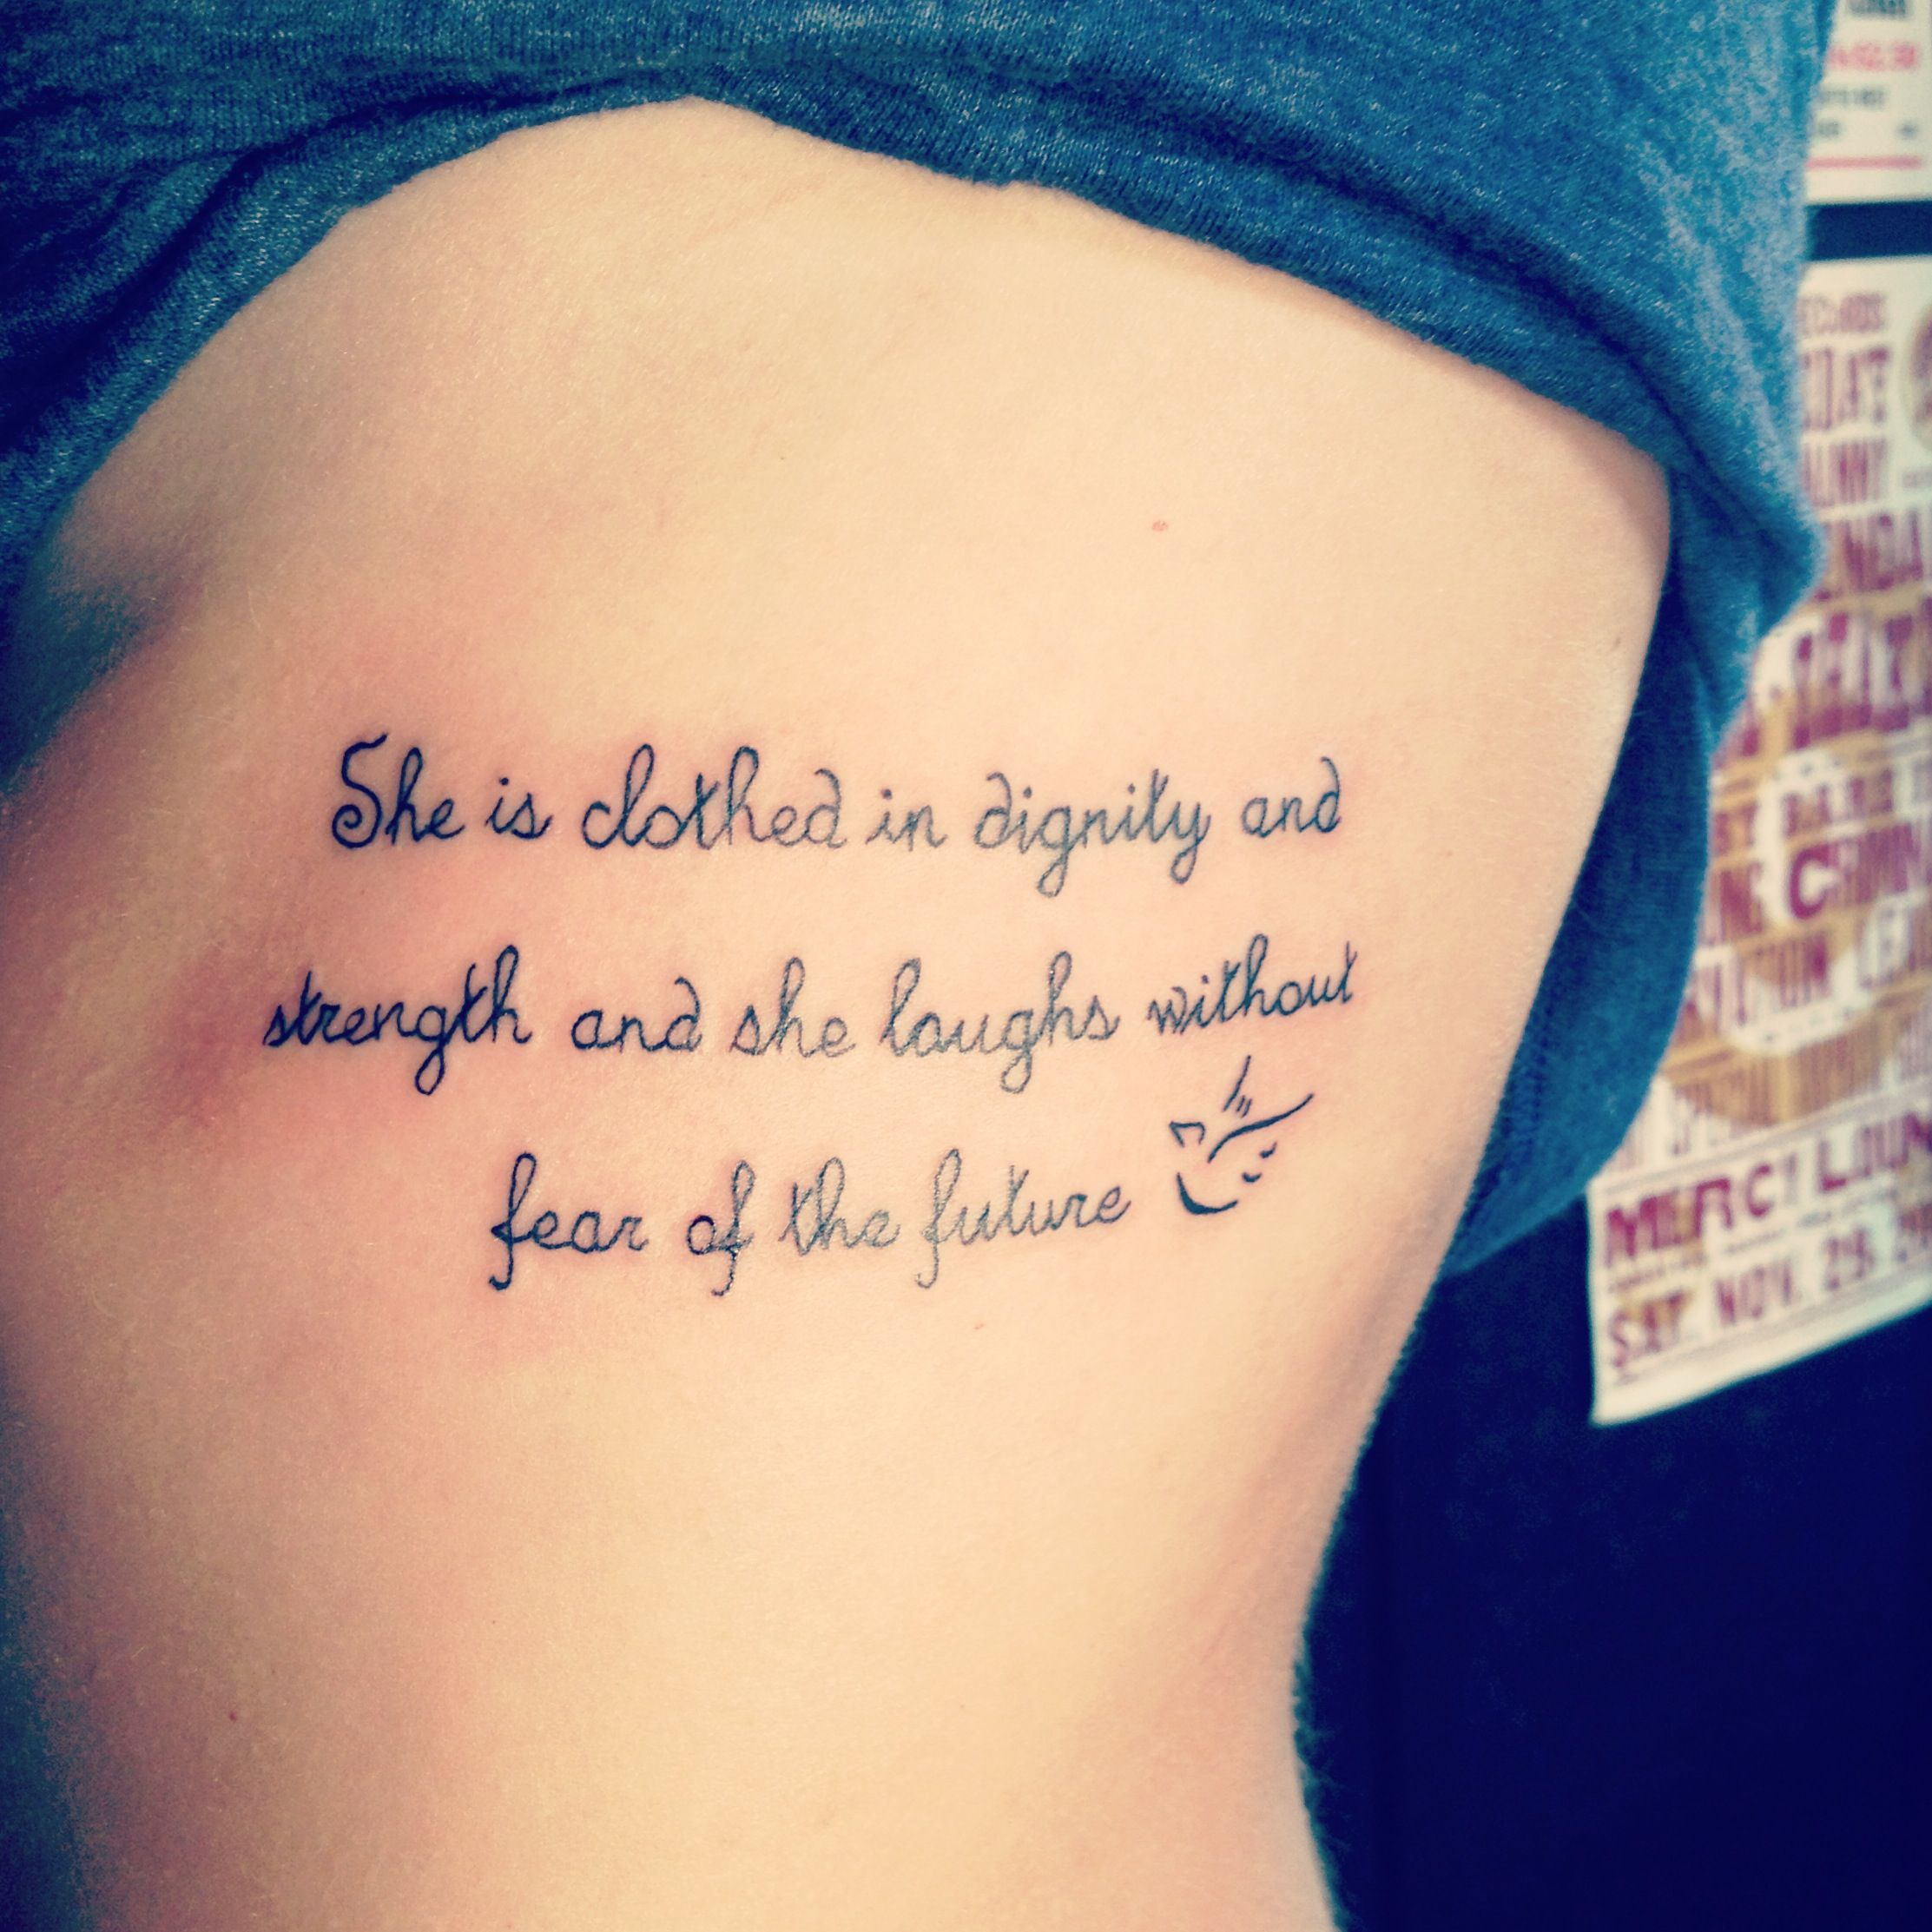 Rib Tattoo She Is Clothed In Dignity And Strength And She Laughs